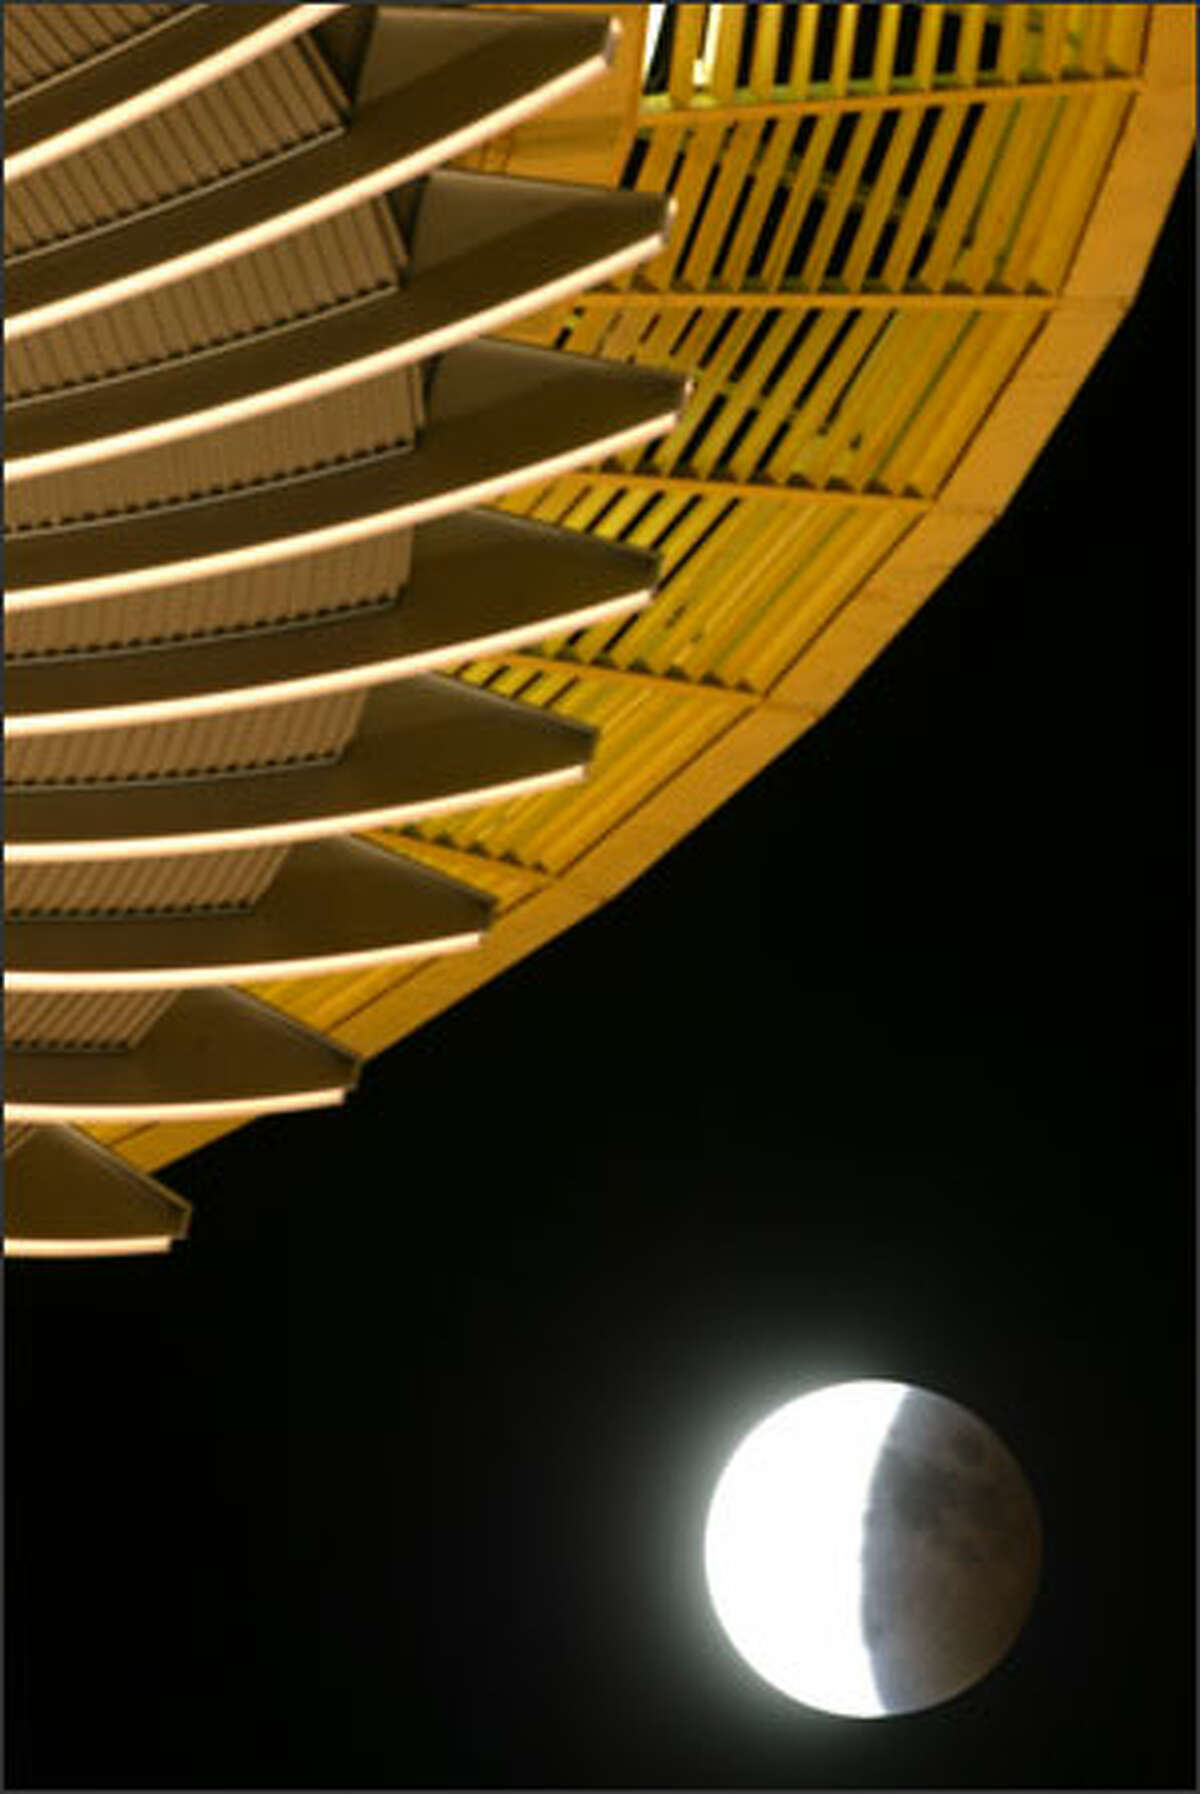 The moon emerges from the earth's shadow as it moves southeast through the Seattle sky during Wednesday's lunar eclipse, as viewed from beneath the Space Needle.